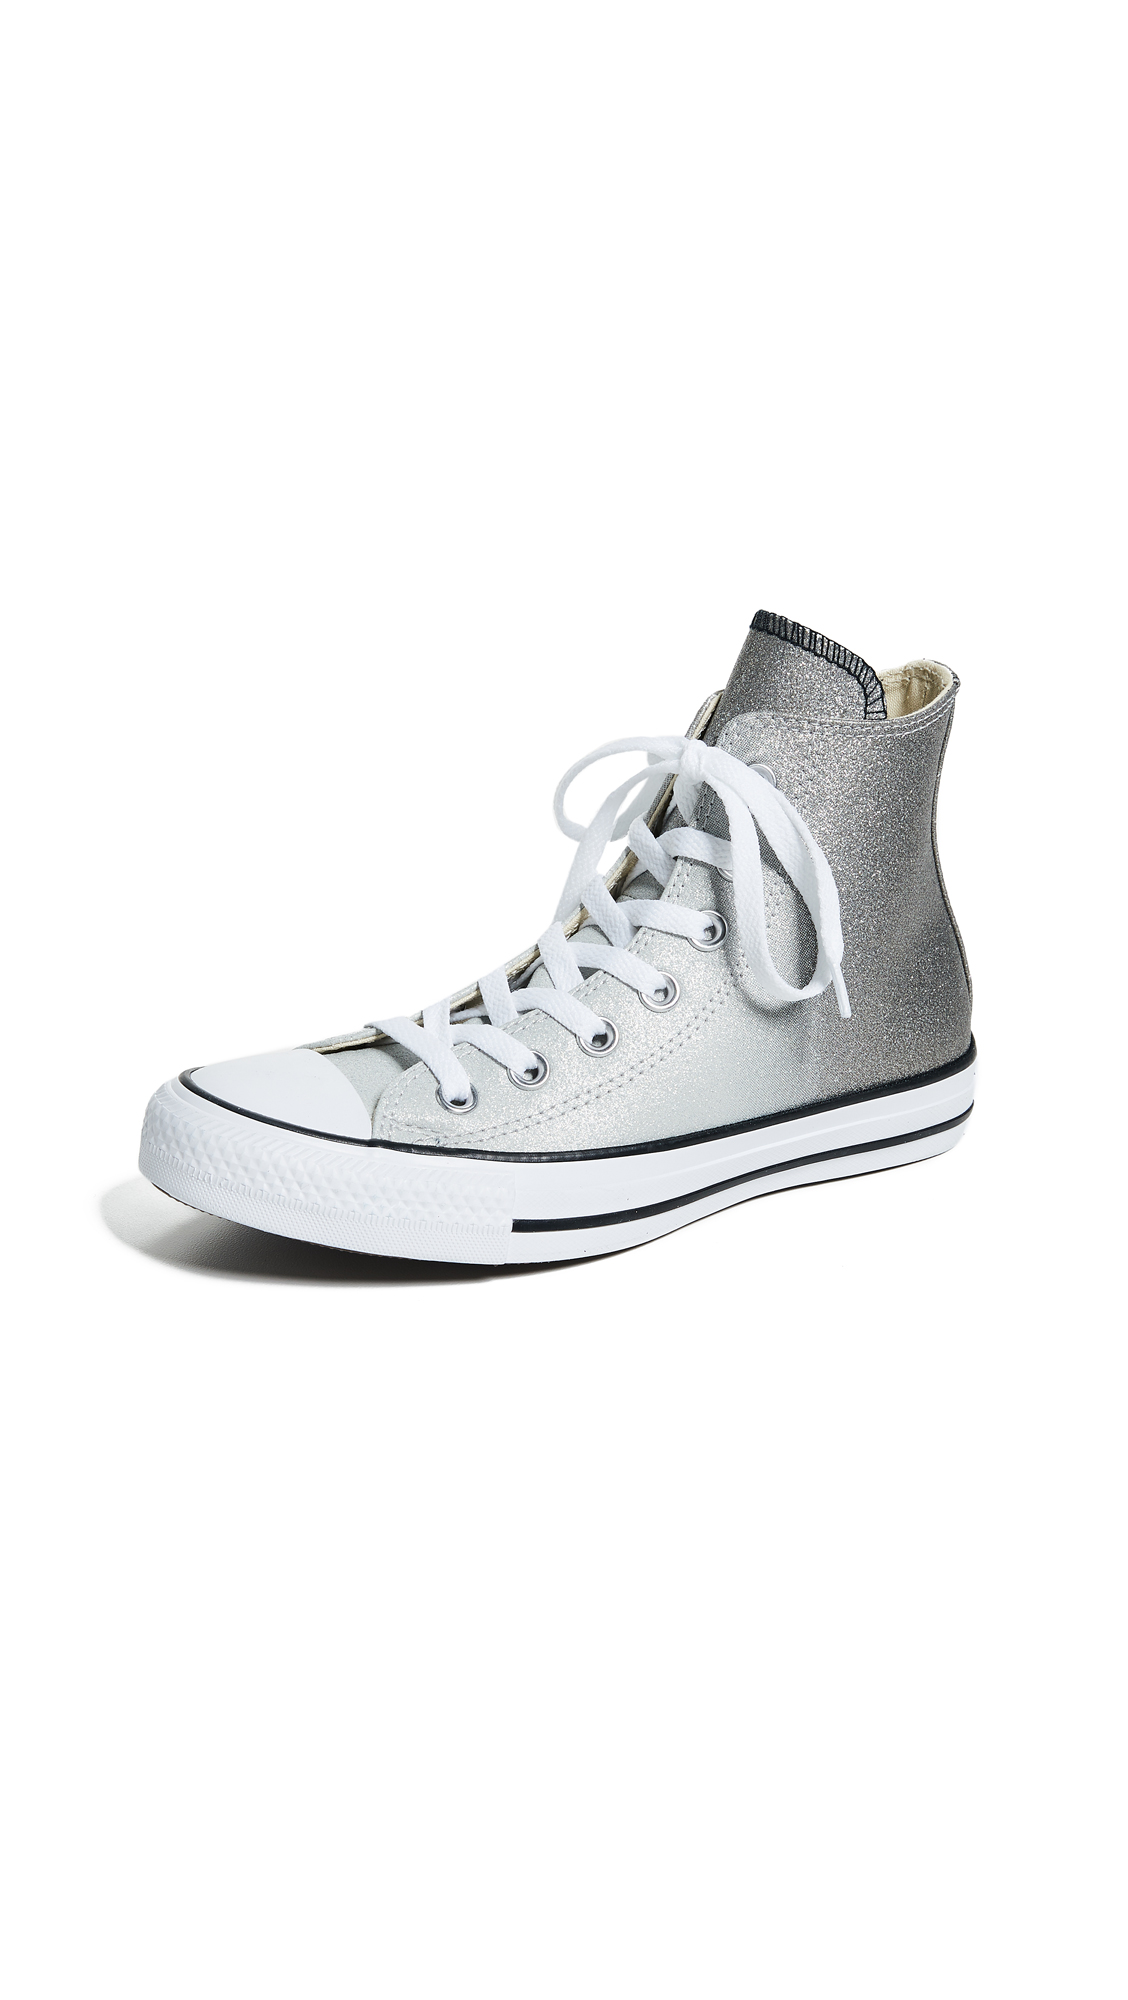 Converse Chuck Taylor All Star High Top Sneakers - Ash Grey/Black/White